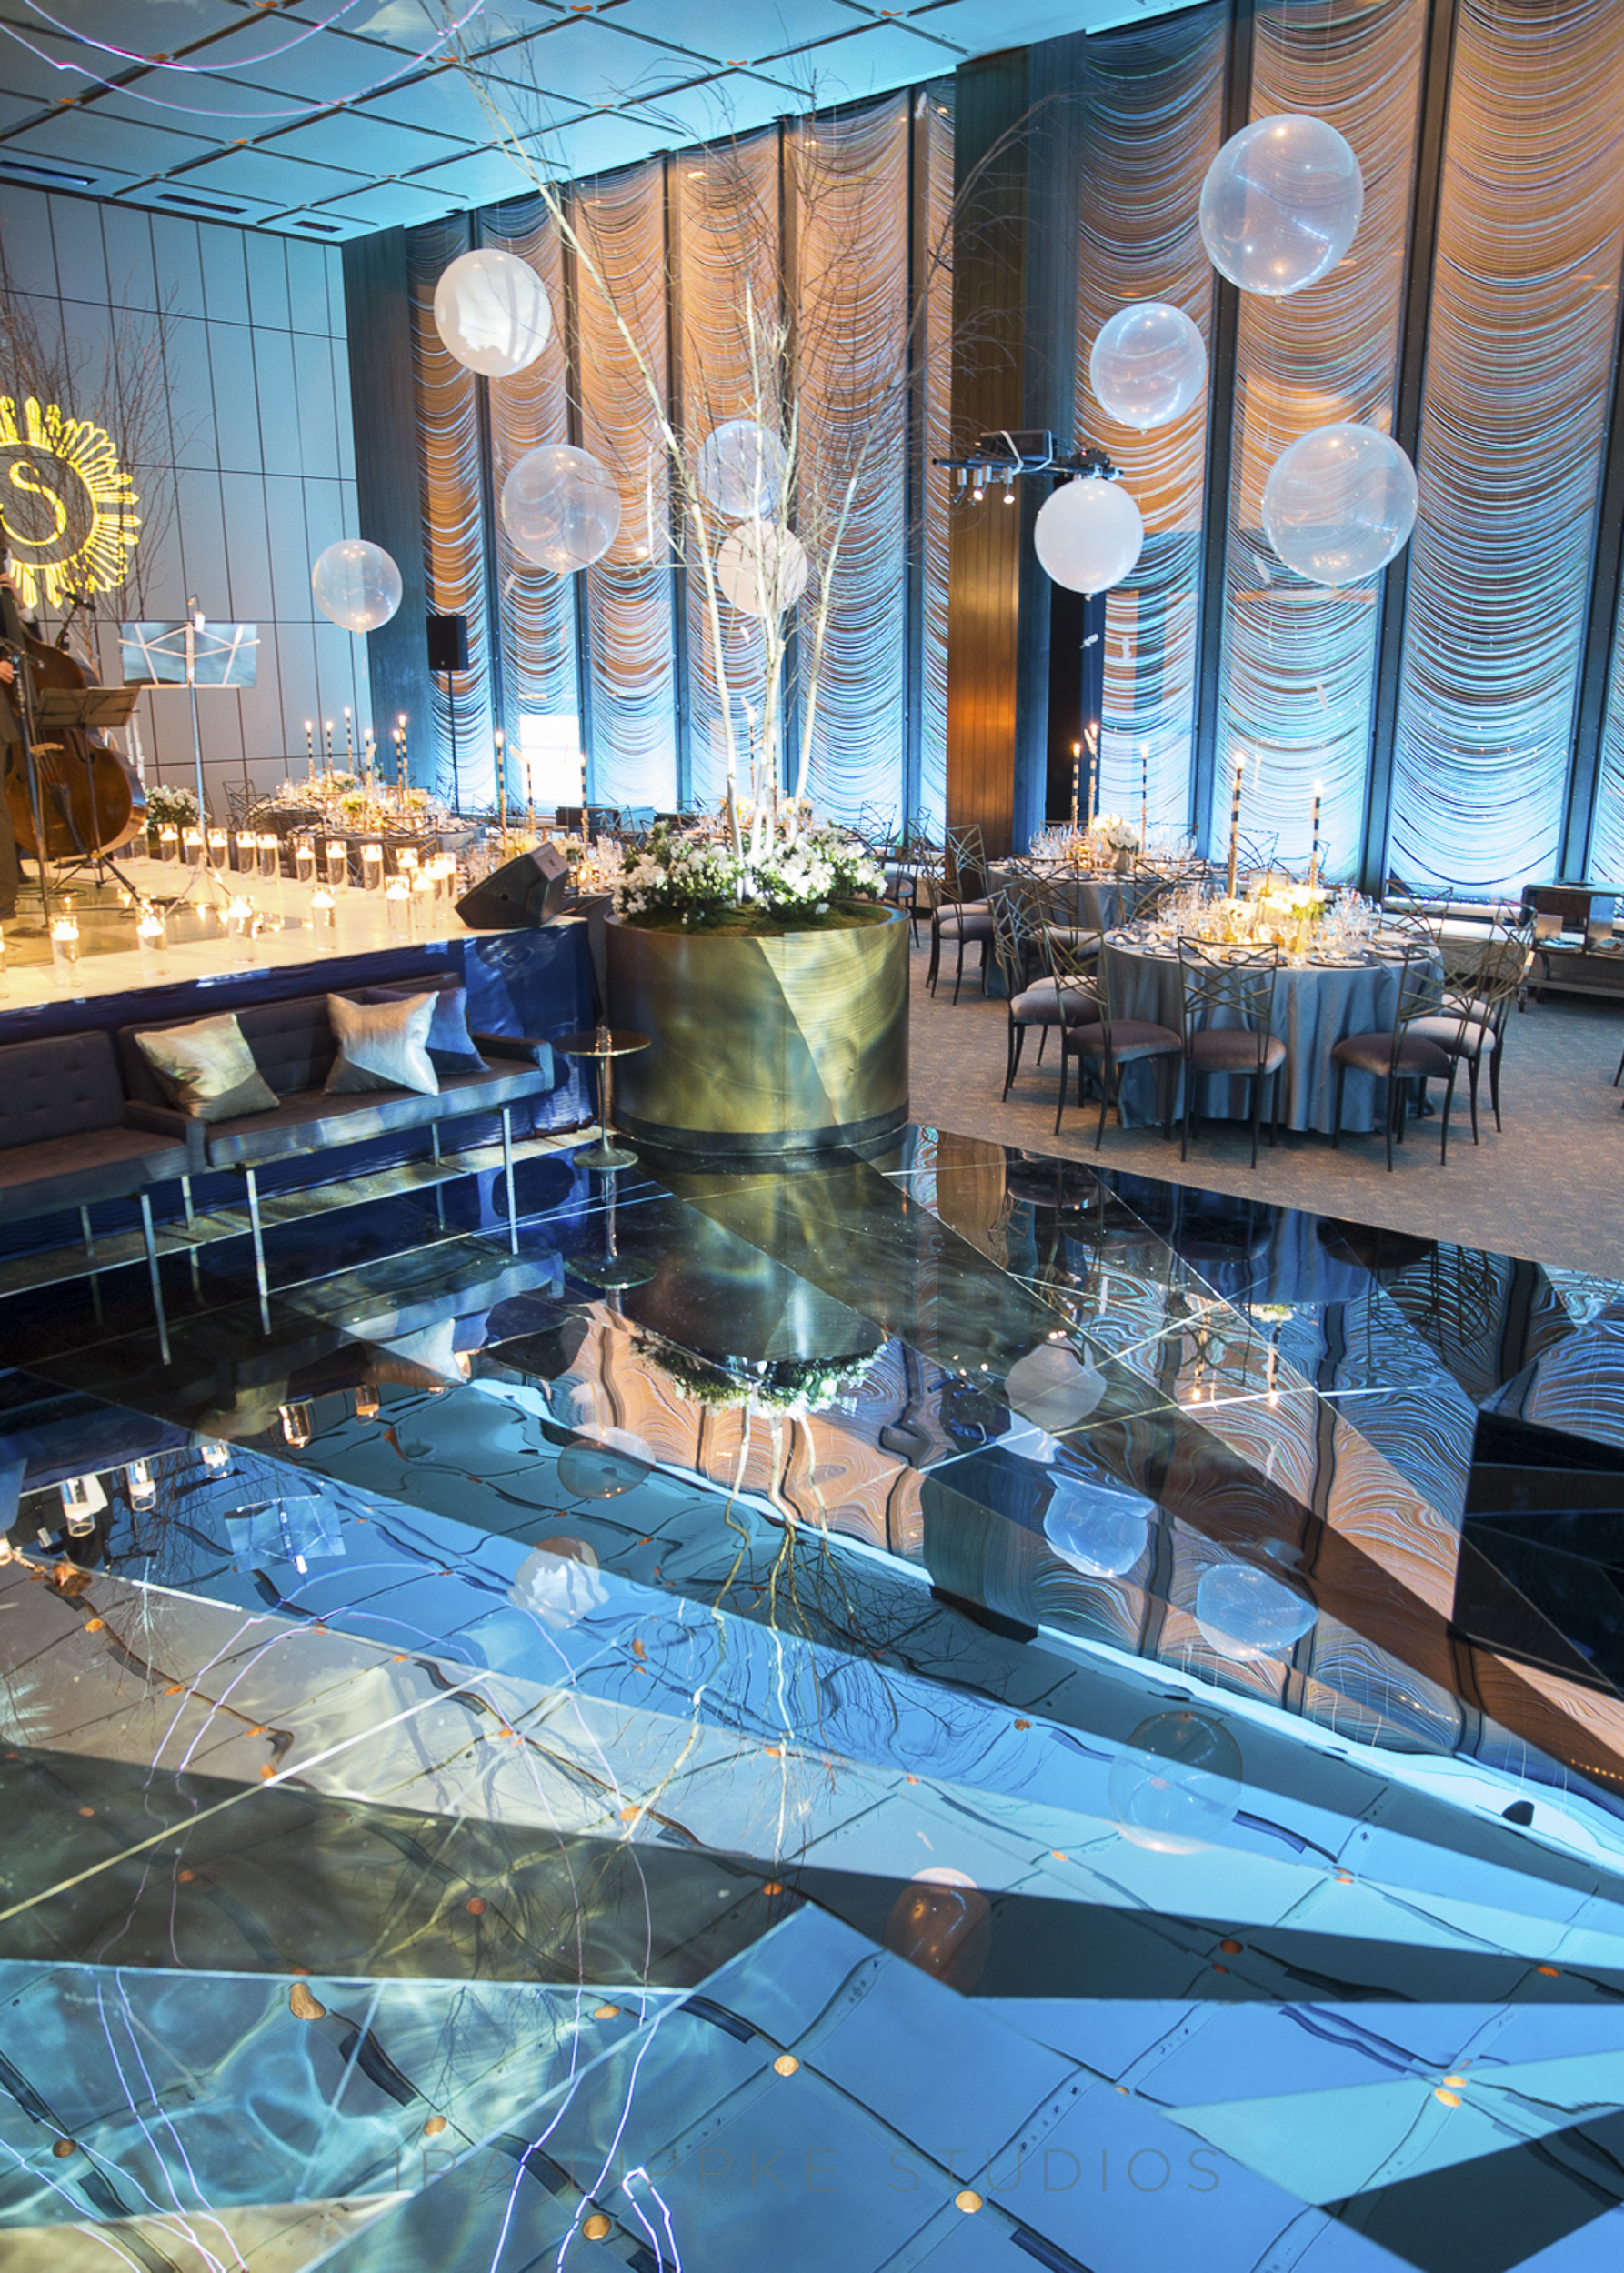 ceci_new_york_kids_party_luxury_invitation_blue_turquoise_teal_gold_bar_bat_mitzvah_art_deco_modern_event_planning_four_seasons_new_york_city_nyc-78.jpg